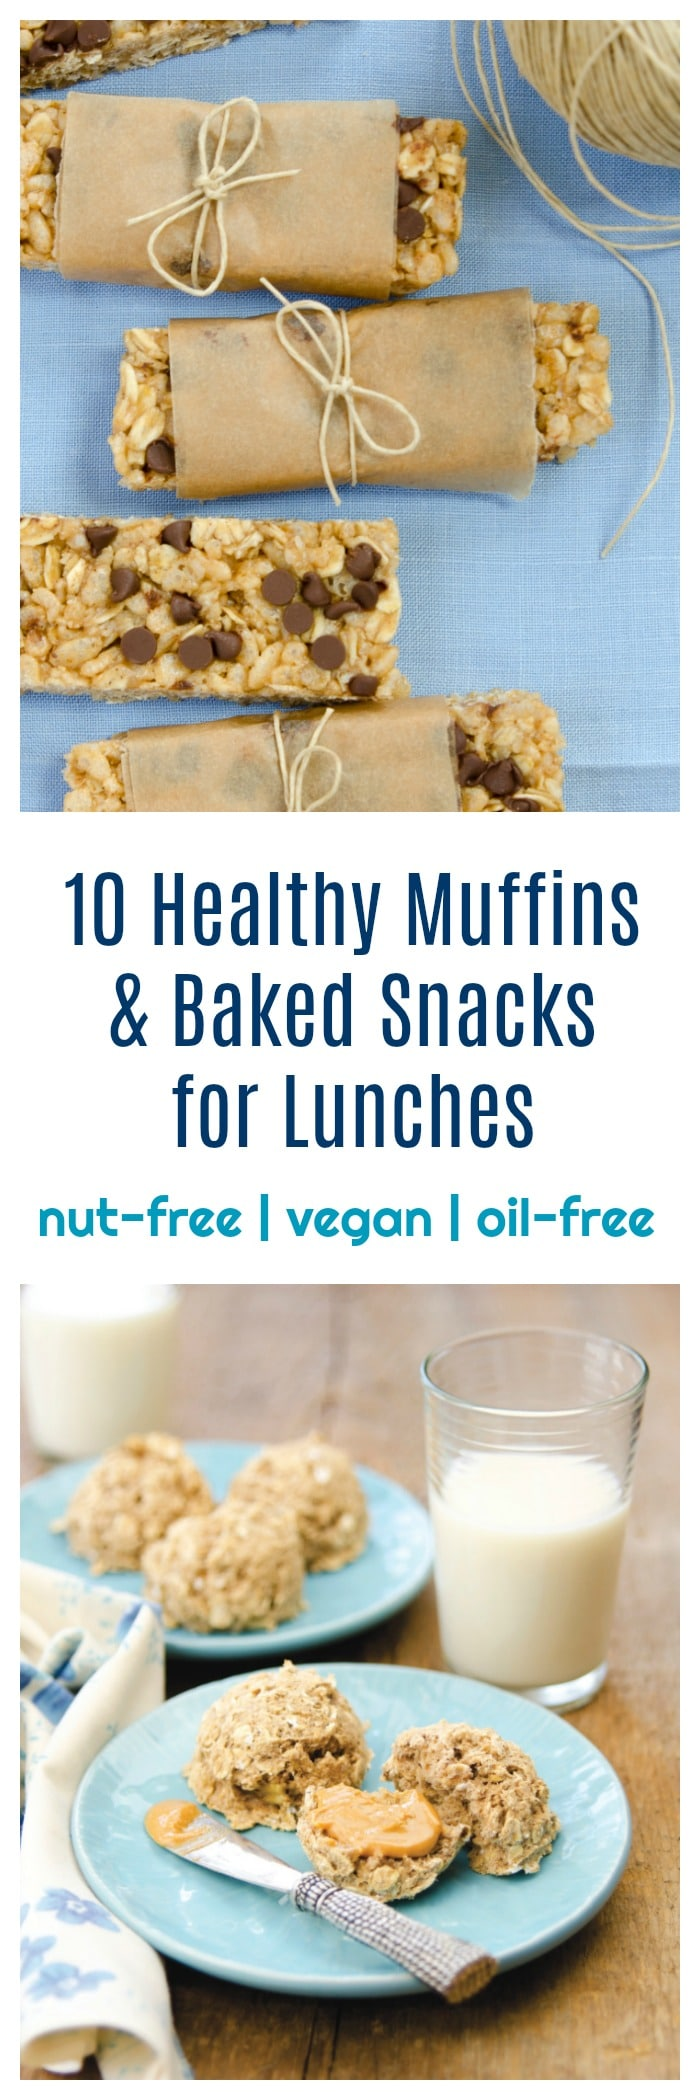 10 Healthy Oil-free Muffins & Baked Snacks for Lunches! www.dreenaburton.com